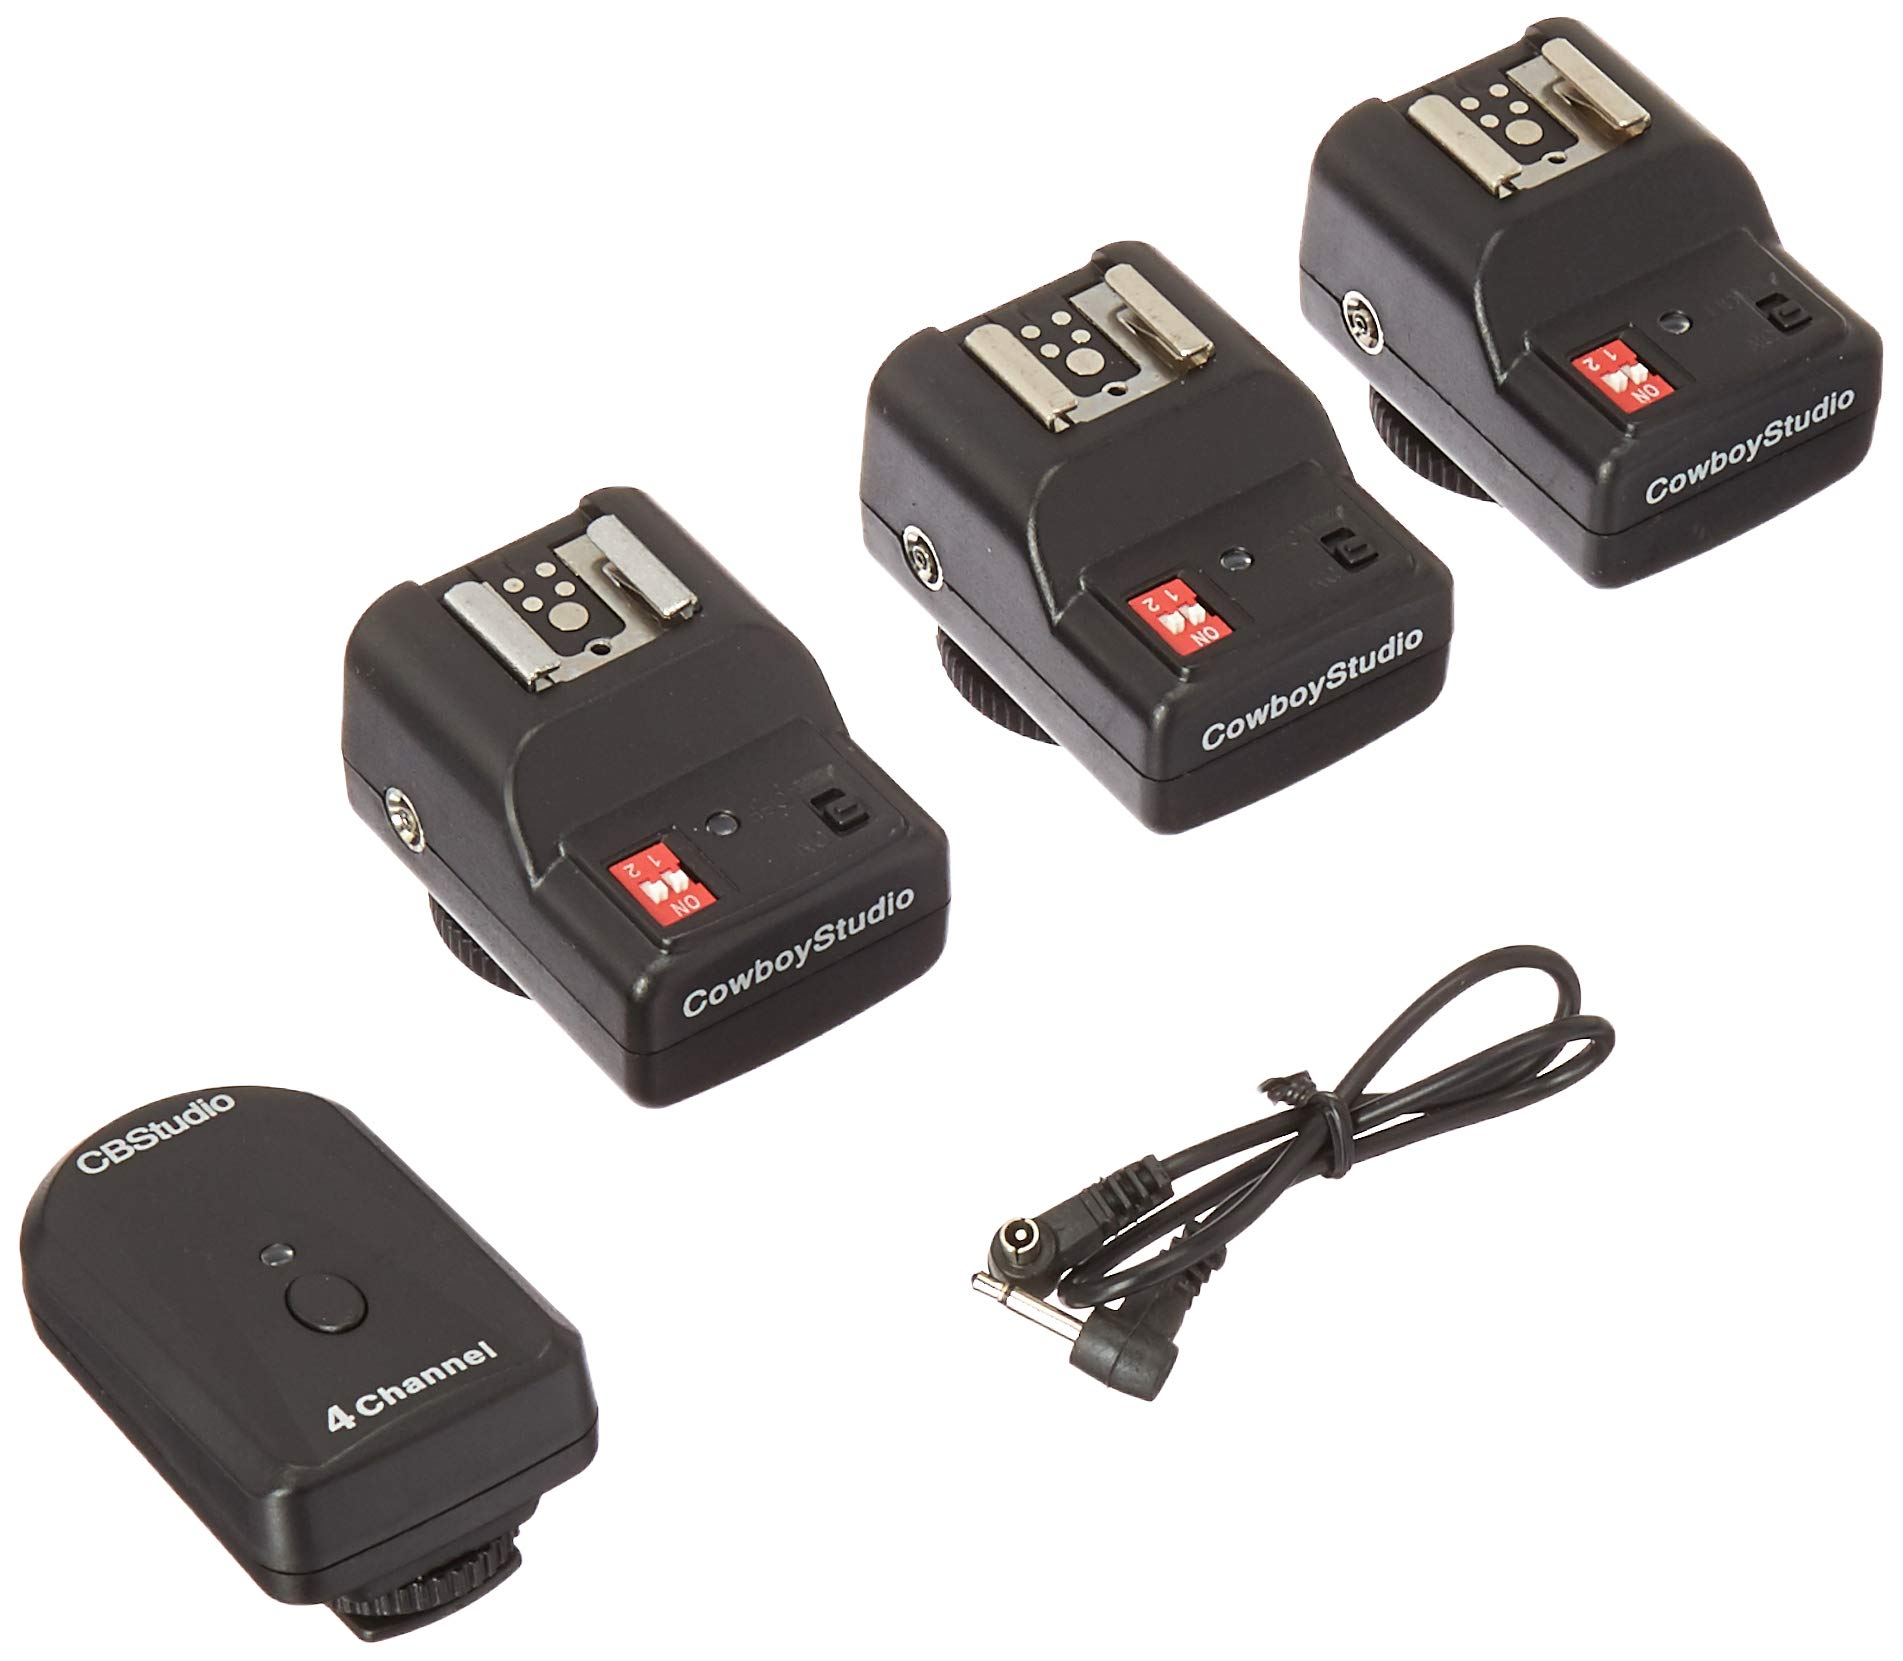 CowboyStudio Channel Wireless Flash Trigger Set for External Speelights with 1 Trigger & 3 Receivers, Black (NPT-04+2xextra Receiver)